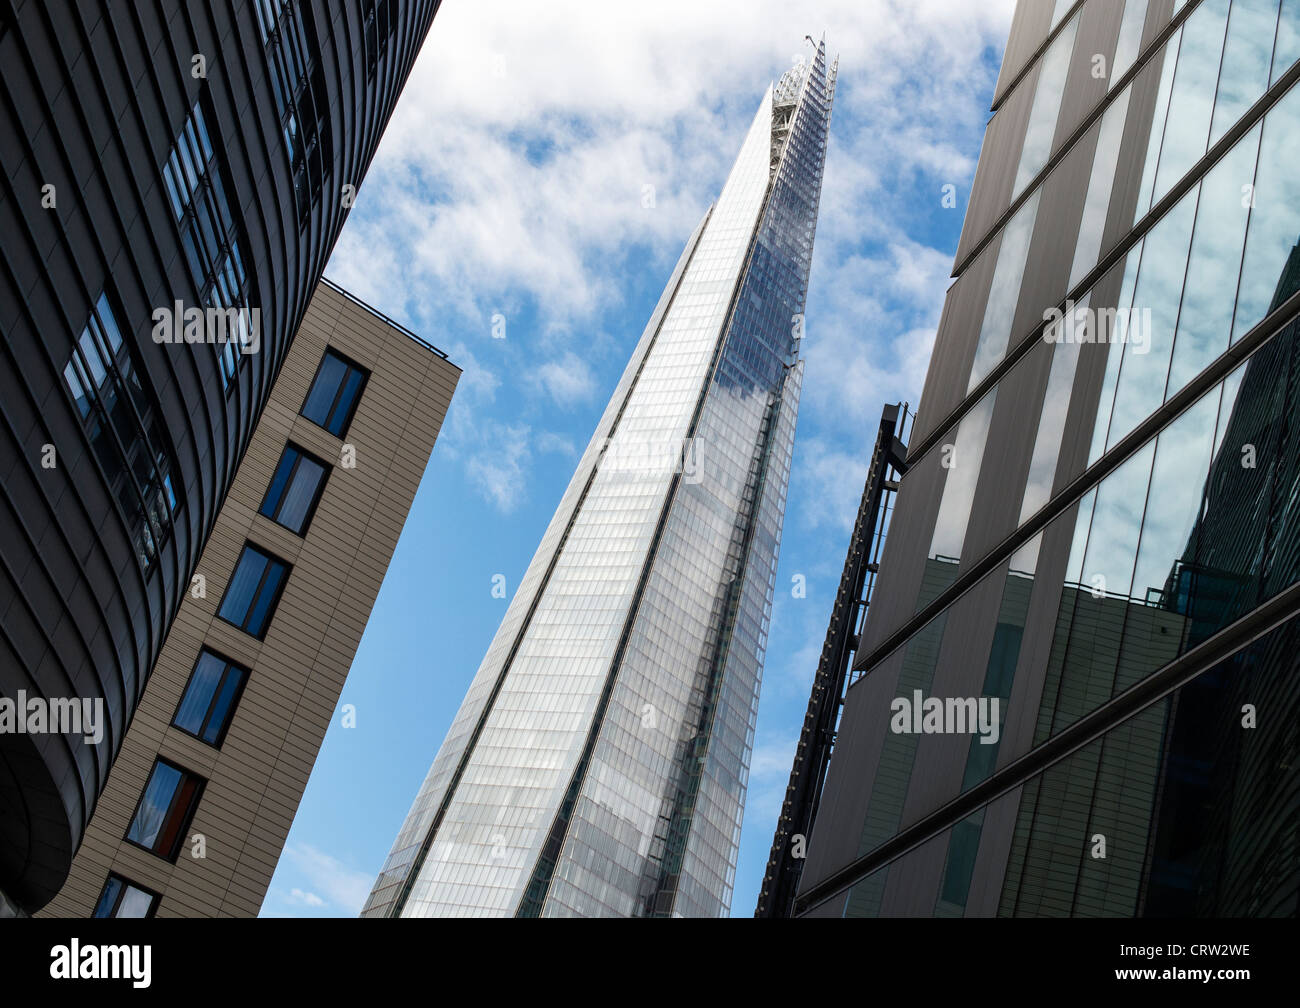 The shard / Shard London Bridge seen from More London Place. Southwark, London, England - Stock Image